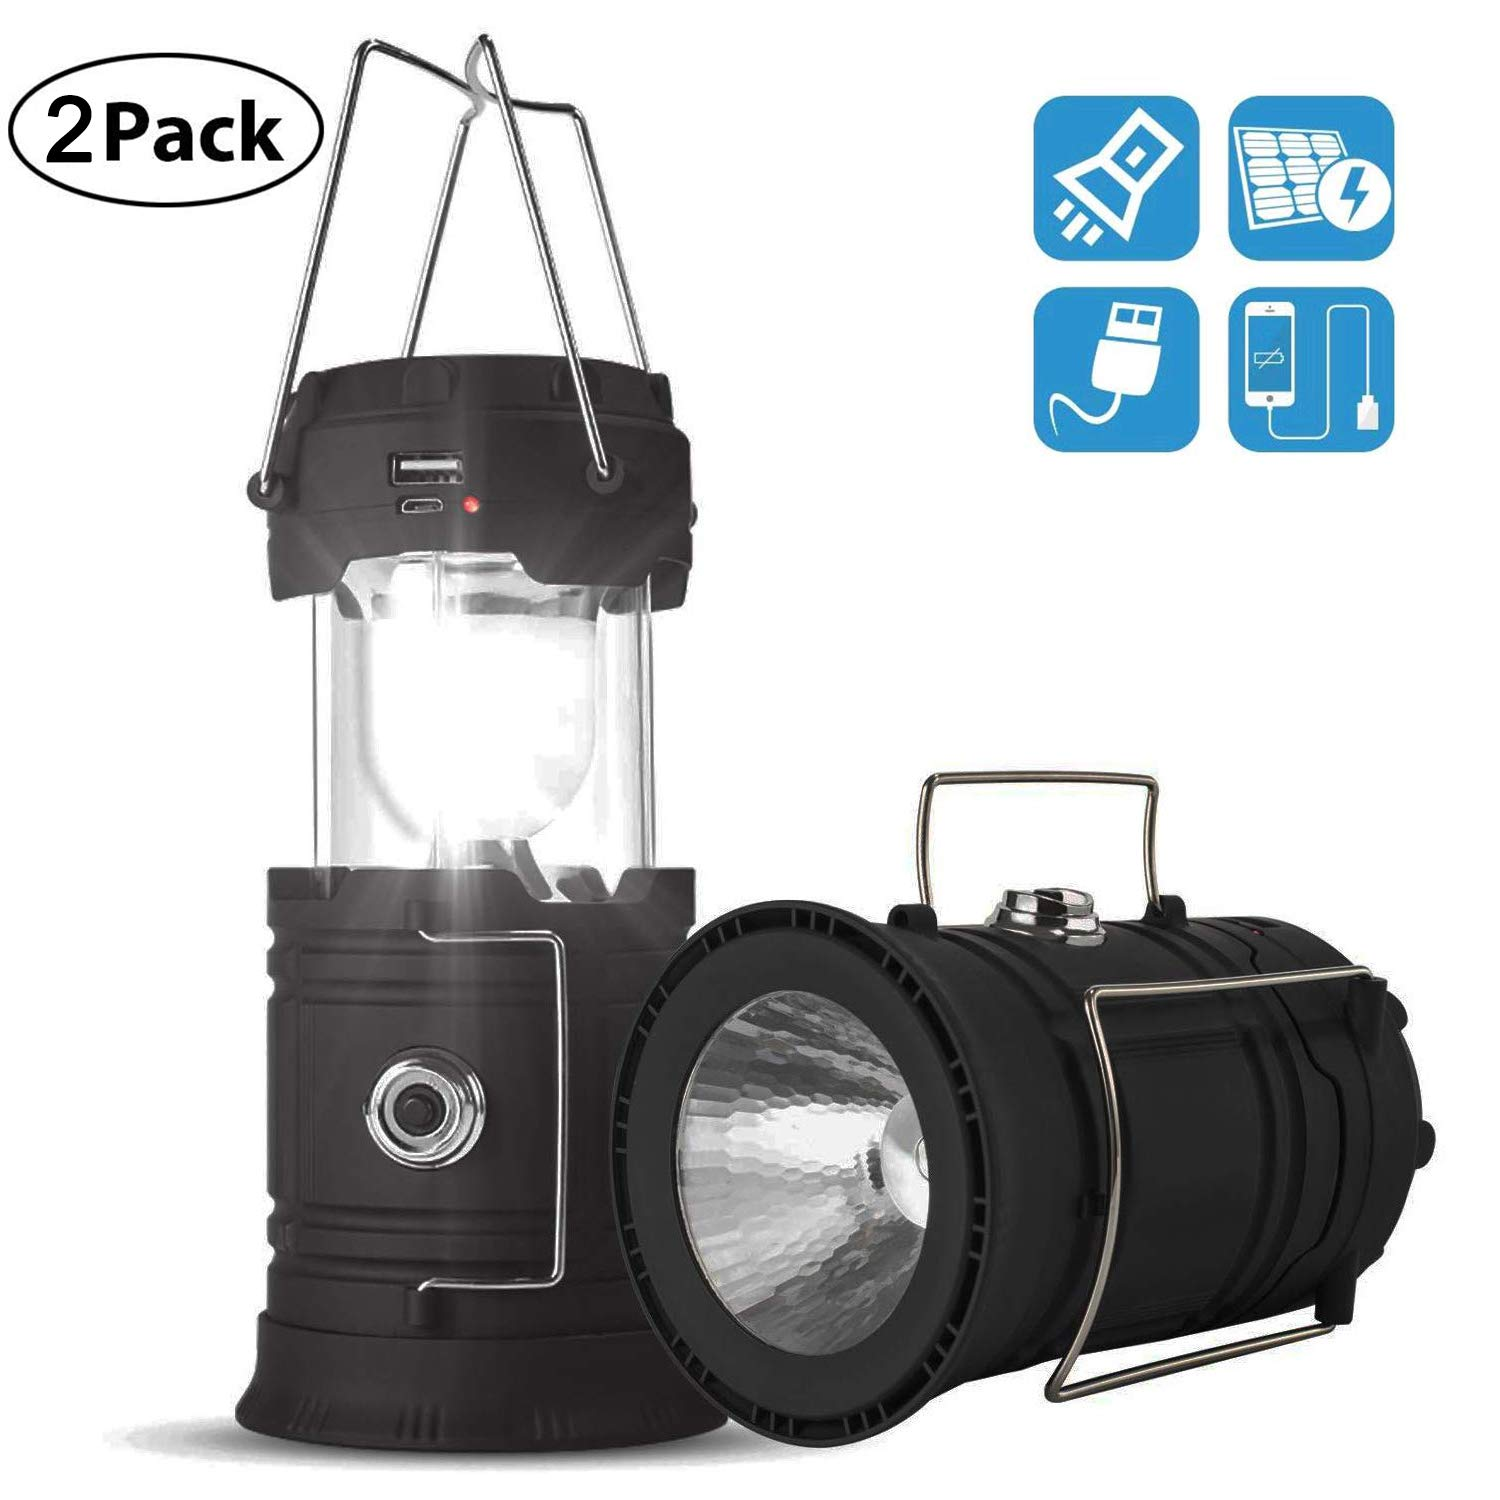 Solar Lantern Flashlights, USB Rechargeable Camping Lantern Led, Collapsible & Portable for Emergency, Hurricanes, Power Outage, Storm (Black 2) by JMADENQ